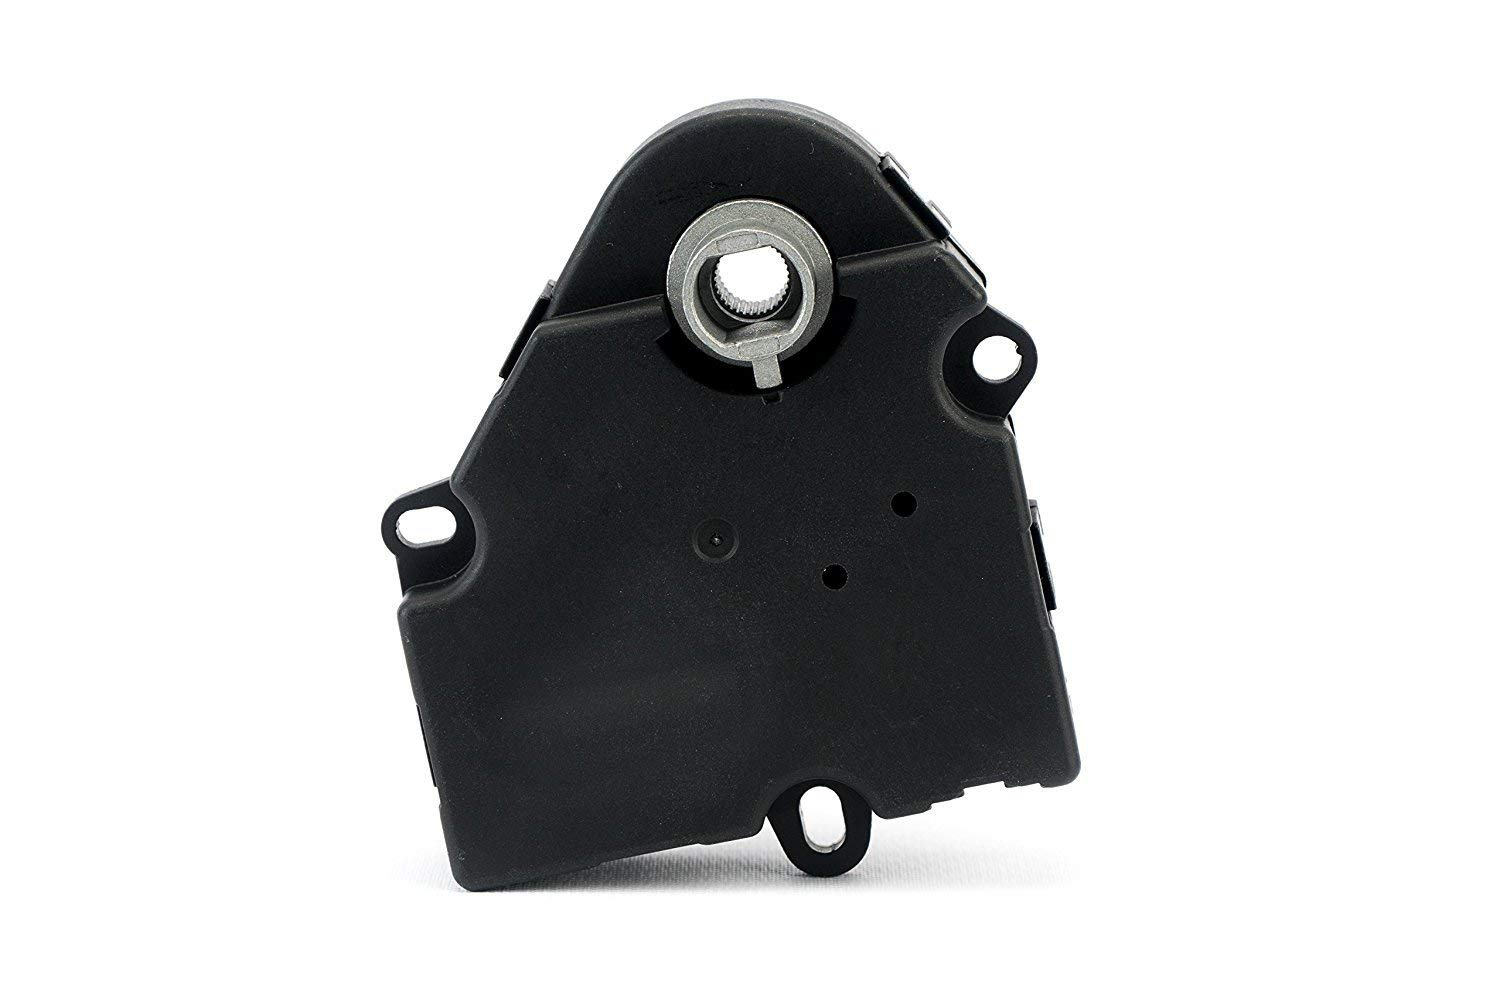 Replaces# 15-73989 Renewed 2011 20826182 AC Heater Blend Mode Fits Chevy Traverse 2009 2012 604-140 HVAC Air Door Actuator 1573989 Buick Enclave 2008-2012 GMC Acadia 2007-2012 2010